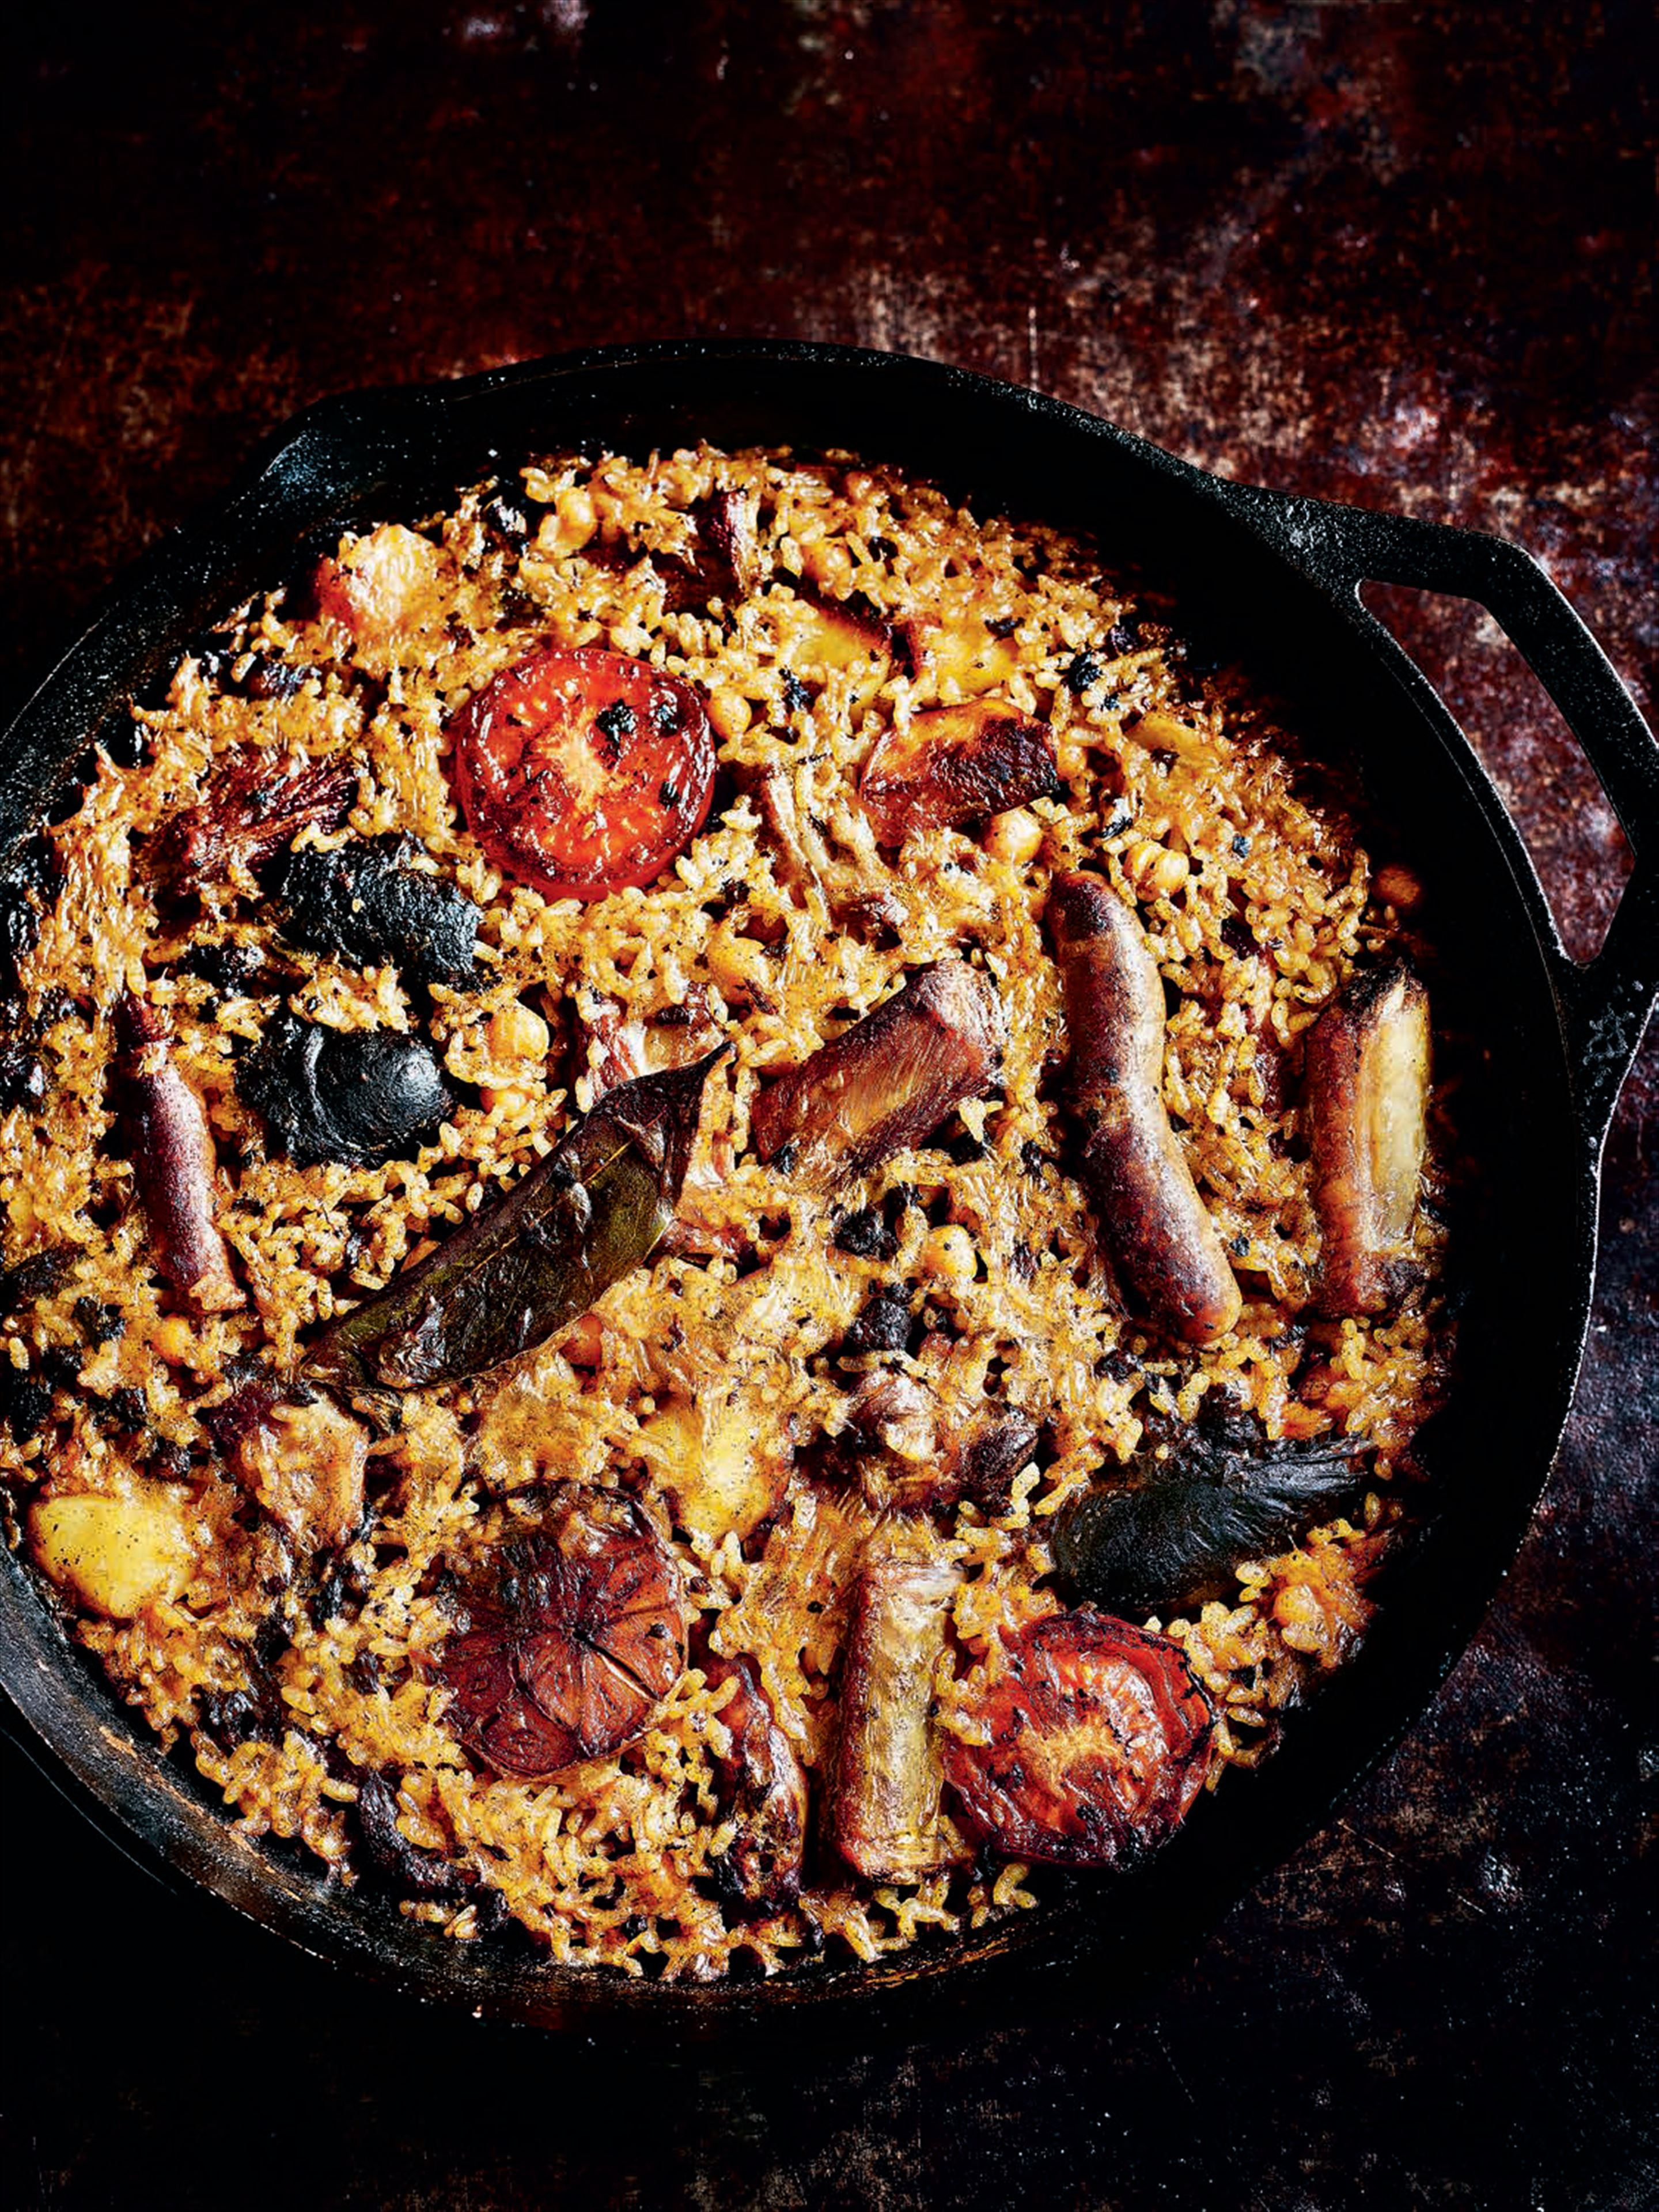 Baked rice with pork ribs and sausage